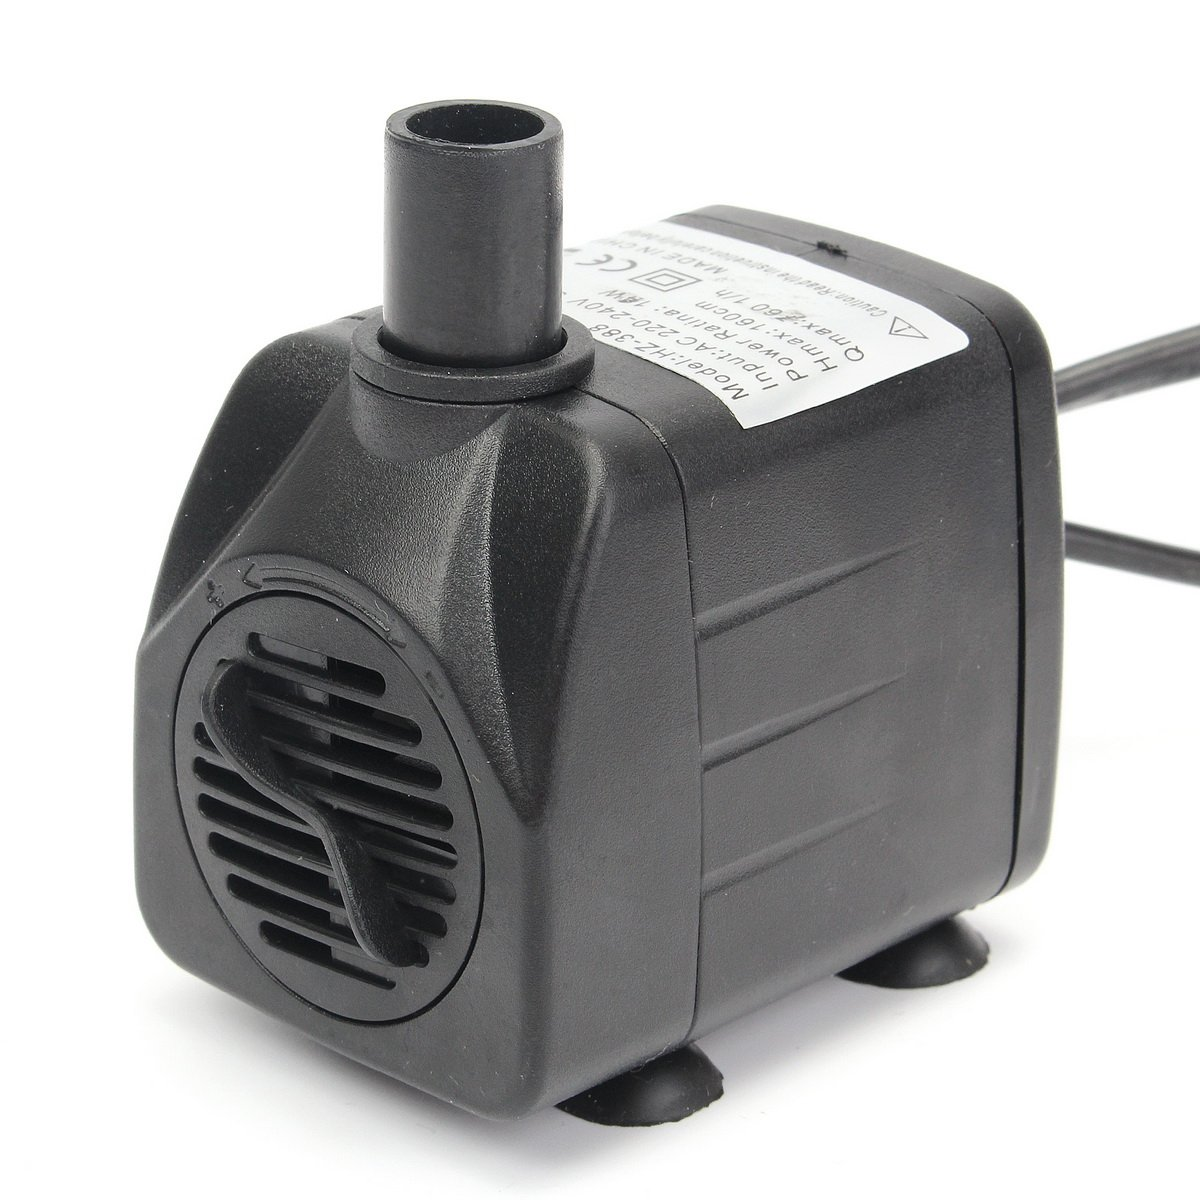 UL 220V 50Hz/60Hz 420L/h LED Light Submersible Water Pump Aquariums Fish Pond Fountain Sump Waterfall